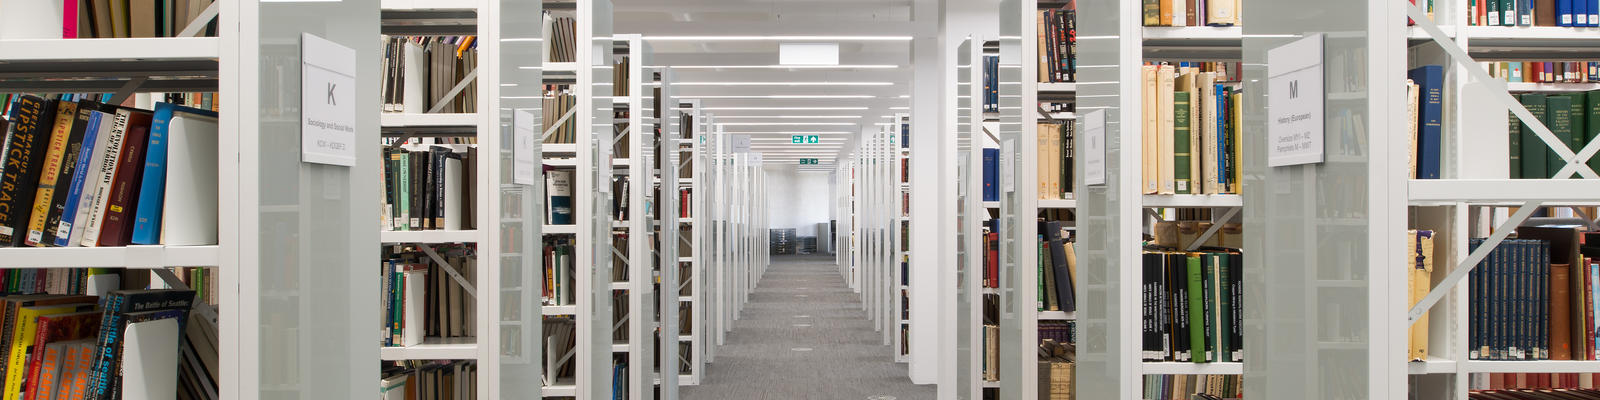 A picture of bookshelves within the Library on Lancaster University Library